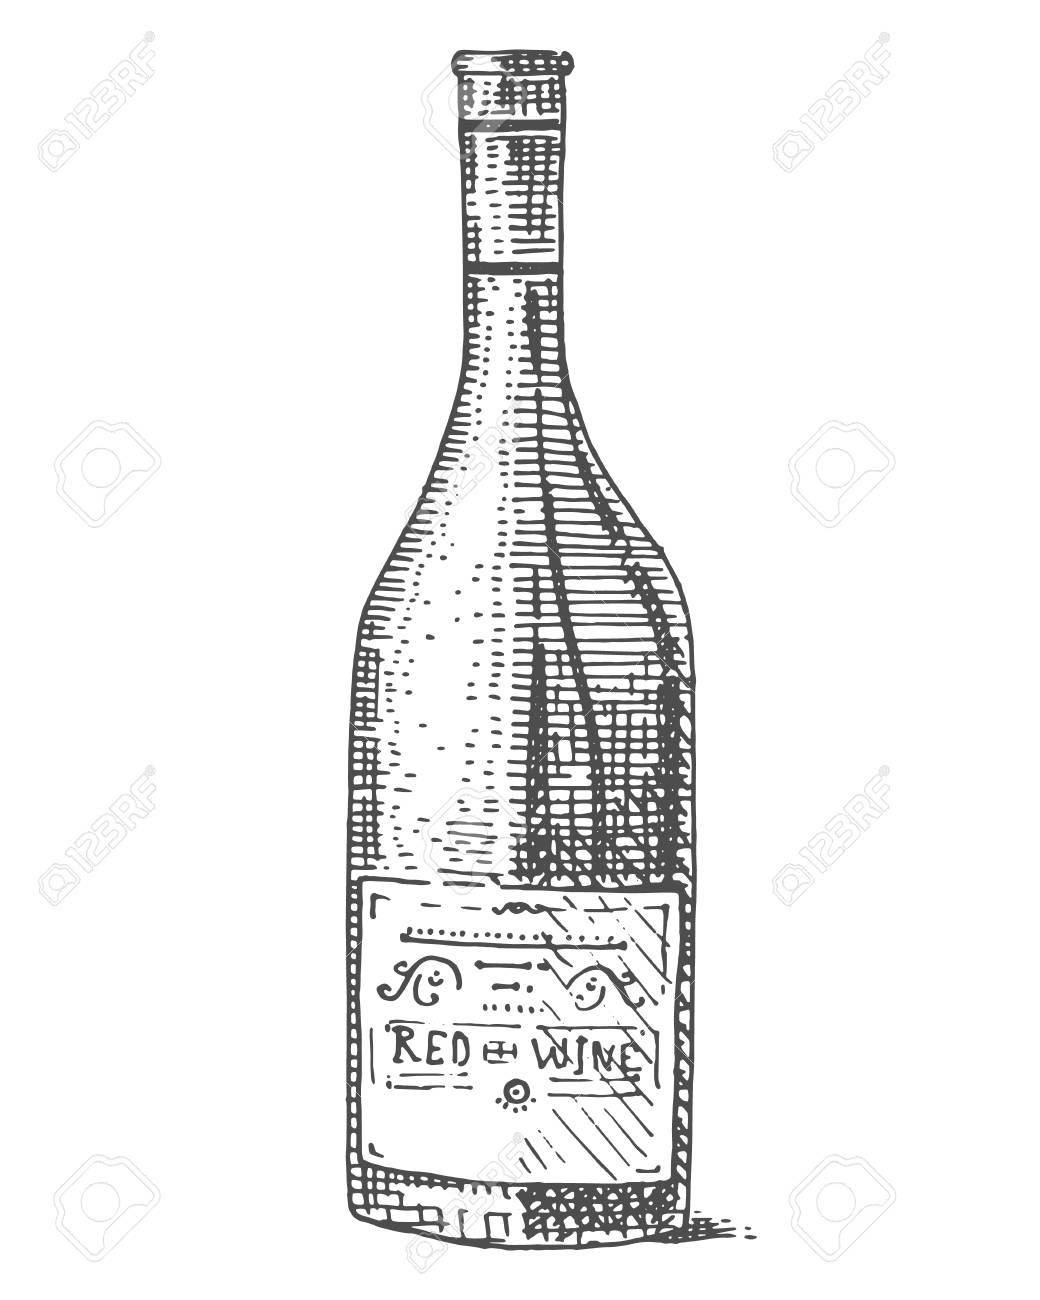 Wine Bottle Hand Drawn Engraved Old Looking Vintage Illustration